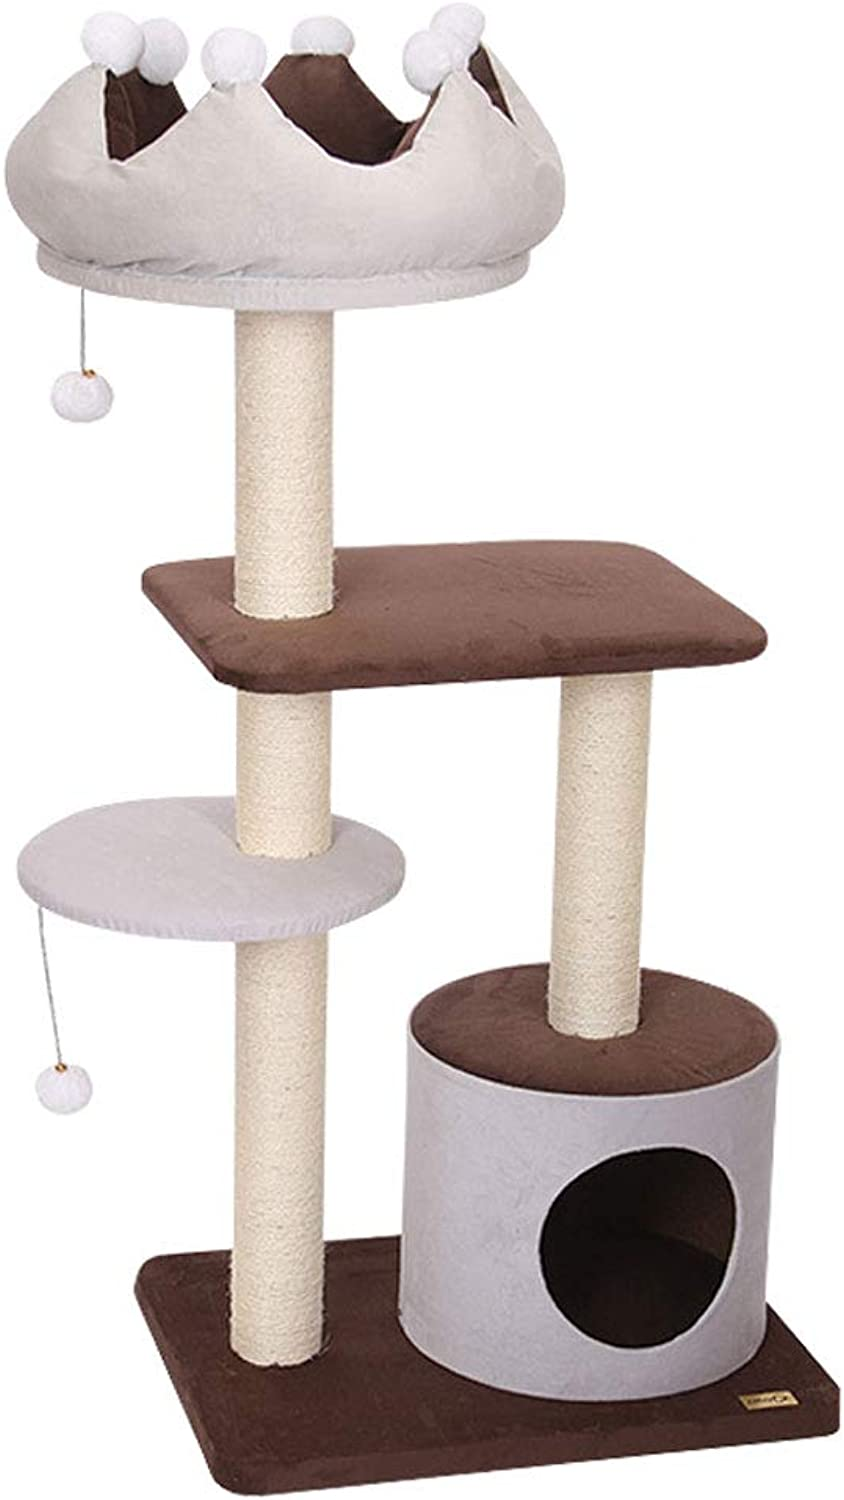 GCHOME Cat tree tower Cat Tree Tower, plush natural sword cat tree cat climbing frame wearresistant scratchresistant durable A2